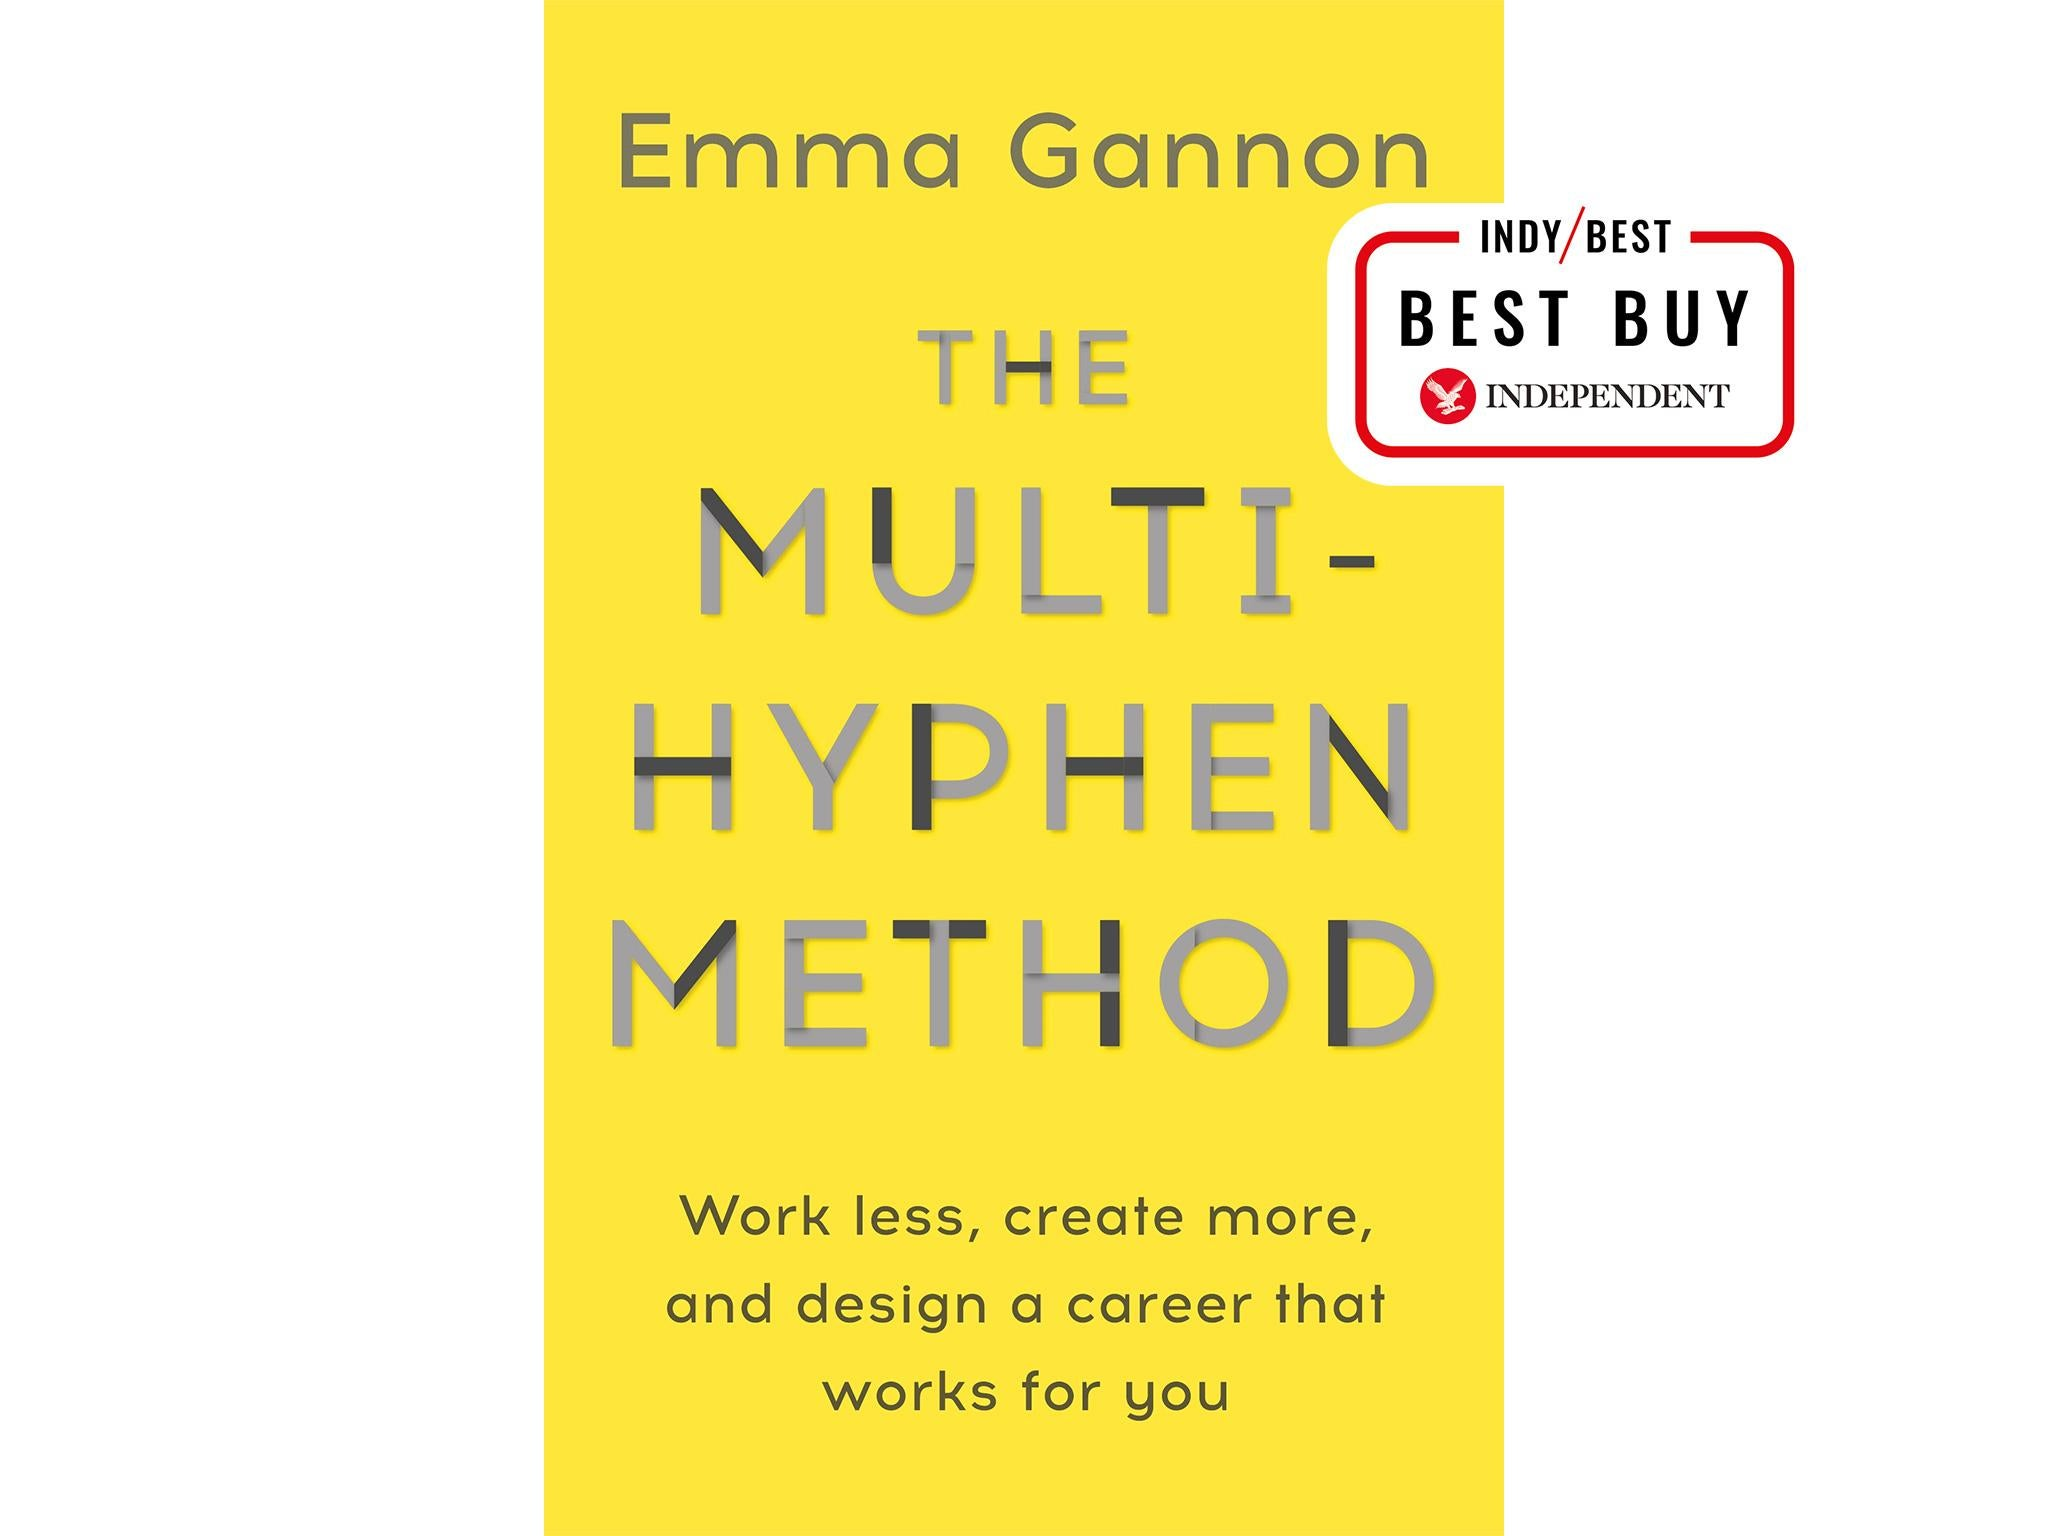 10 best business books written by women | The Independent